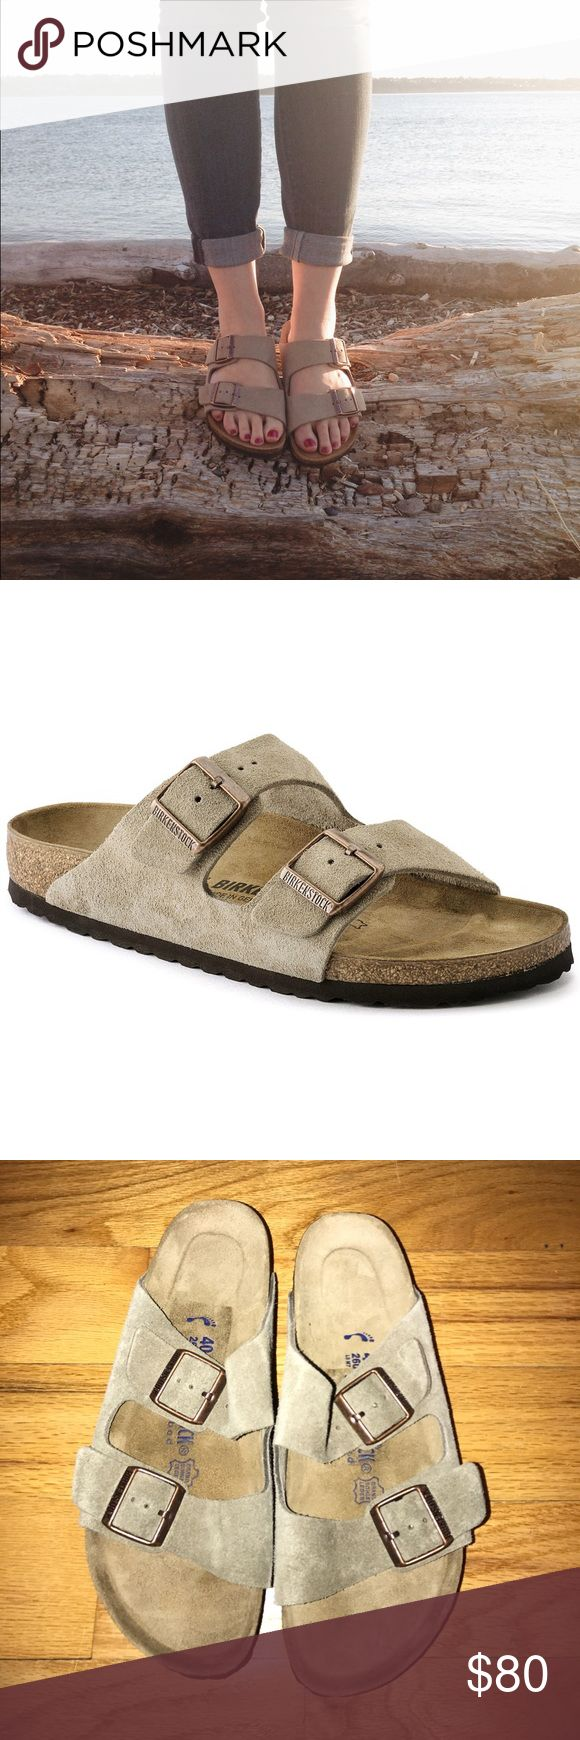 Taupe Birkenstock Arizona Soft Footbed Sandals The often imitated, never duplicated, category-defining, two-strap wonder from Birkenstock. A comfort legend and a fashion staple. With adjustable straps and a magical cork footbed that conforms to the shape of your foot, a truly custom fit is as effortless as the classic design.   Suede – a soft and flexible leather with light surface nap Contoured cork footbed conforms to the shape of your foot and features pronounced arch support, a deep heel…